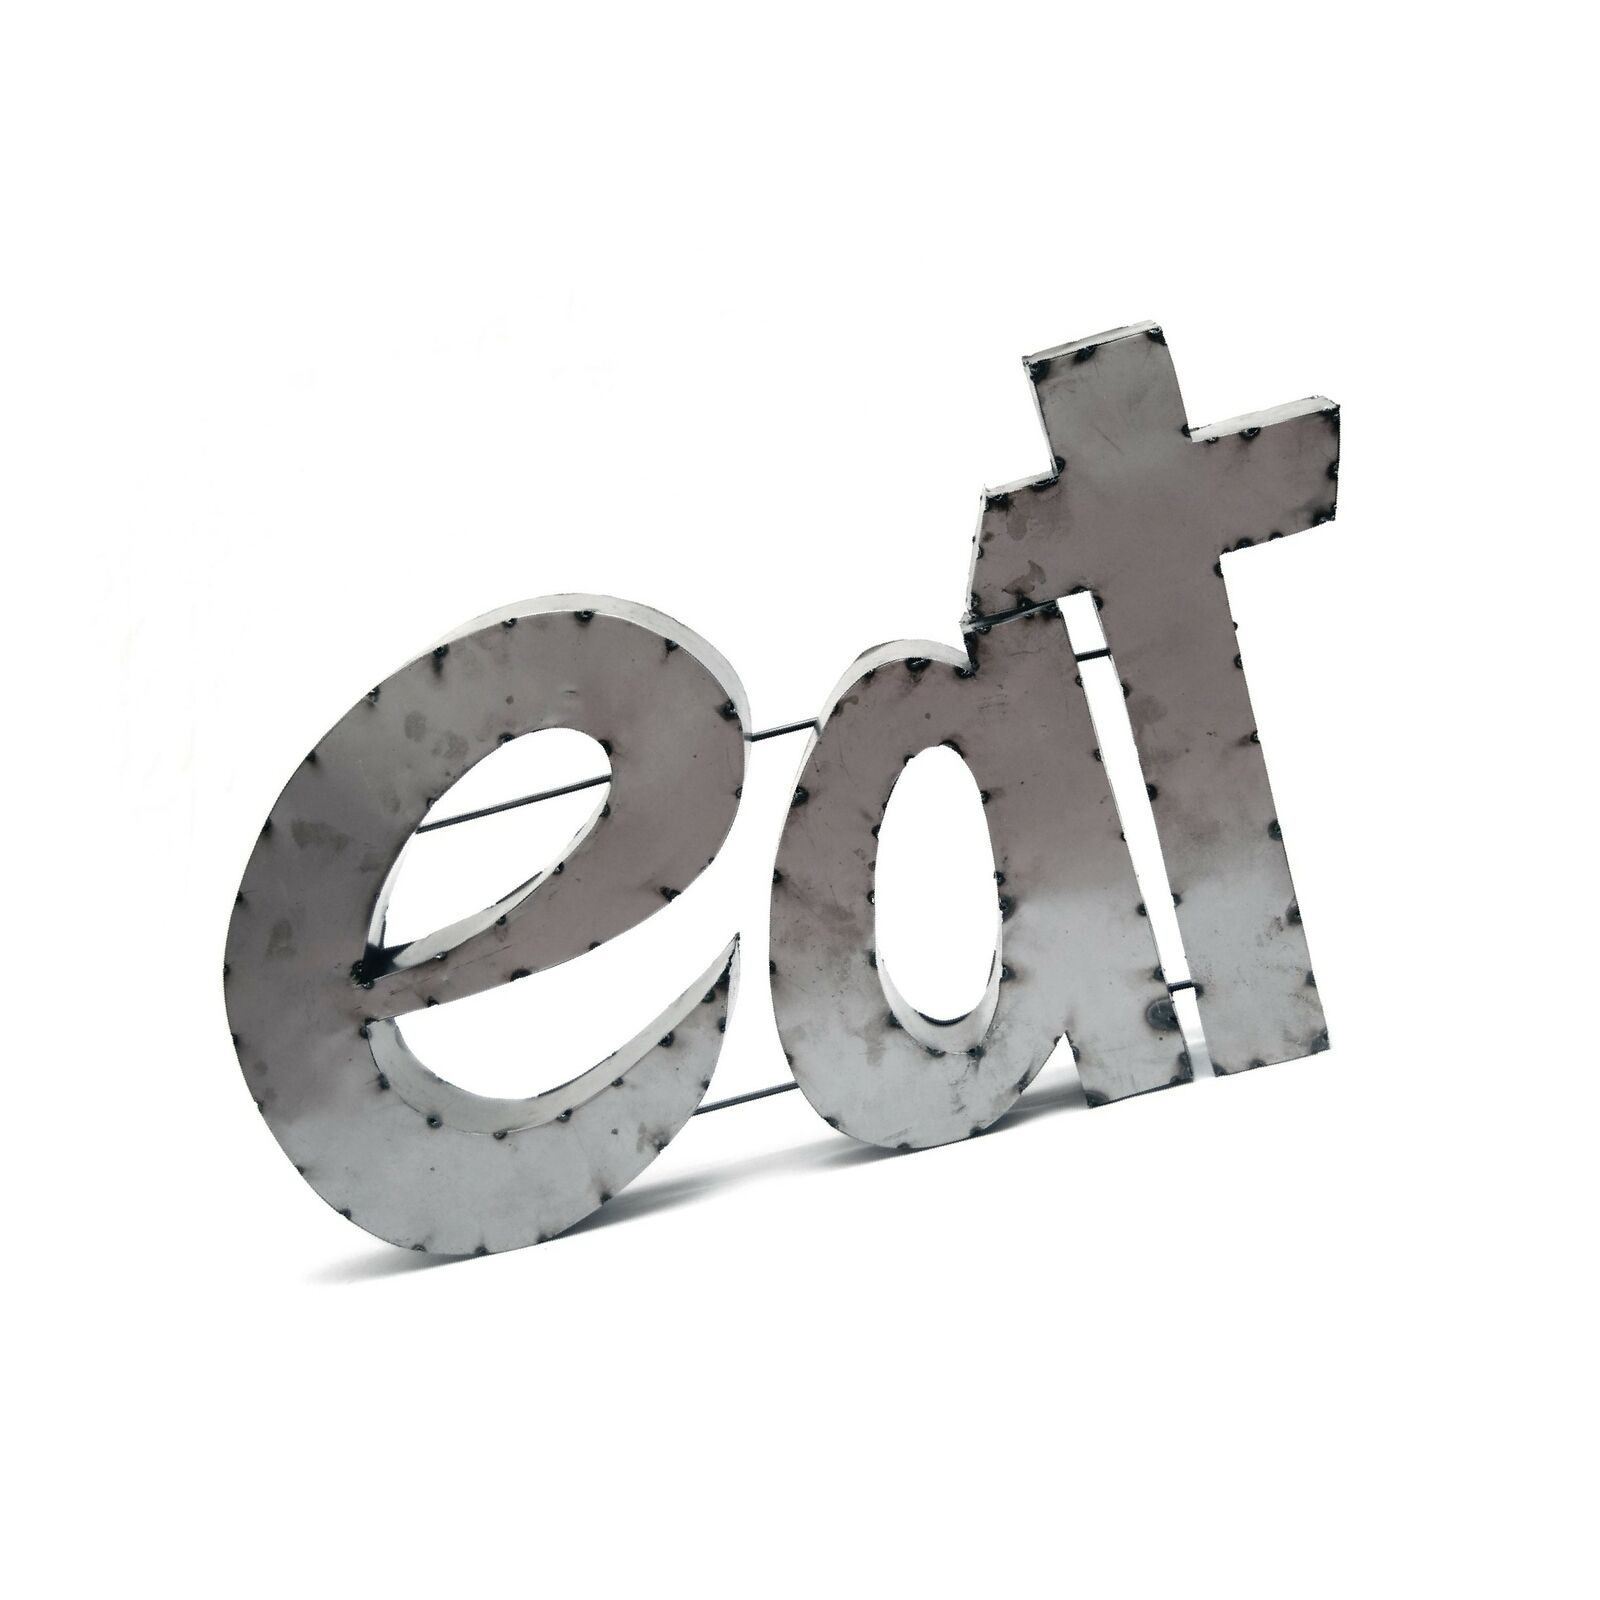 """Rustic Arrow Eat Sign With Rebar For Decor, 224.5 15 Inch, Brown In Grey """"eat"""" Sign With Rebar Decor (Photo 5 of 30)"""